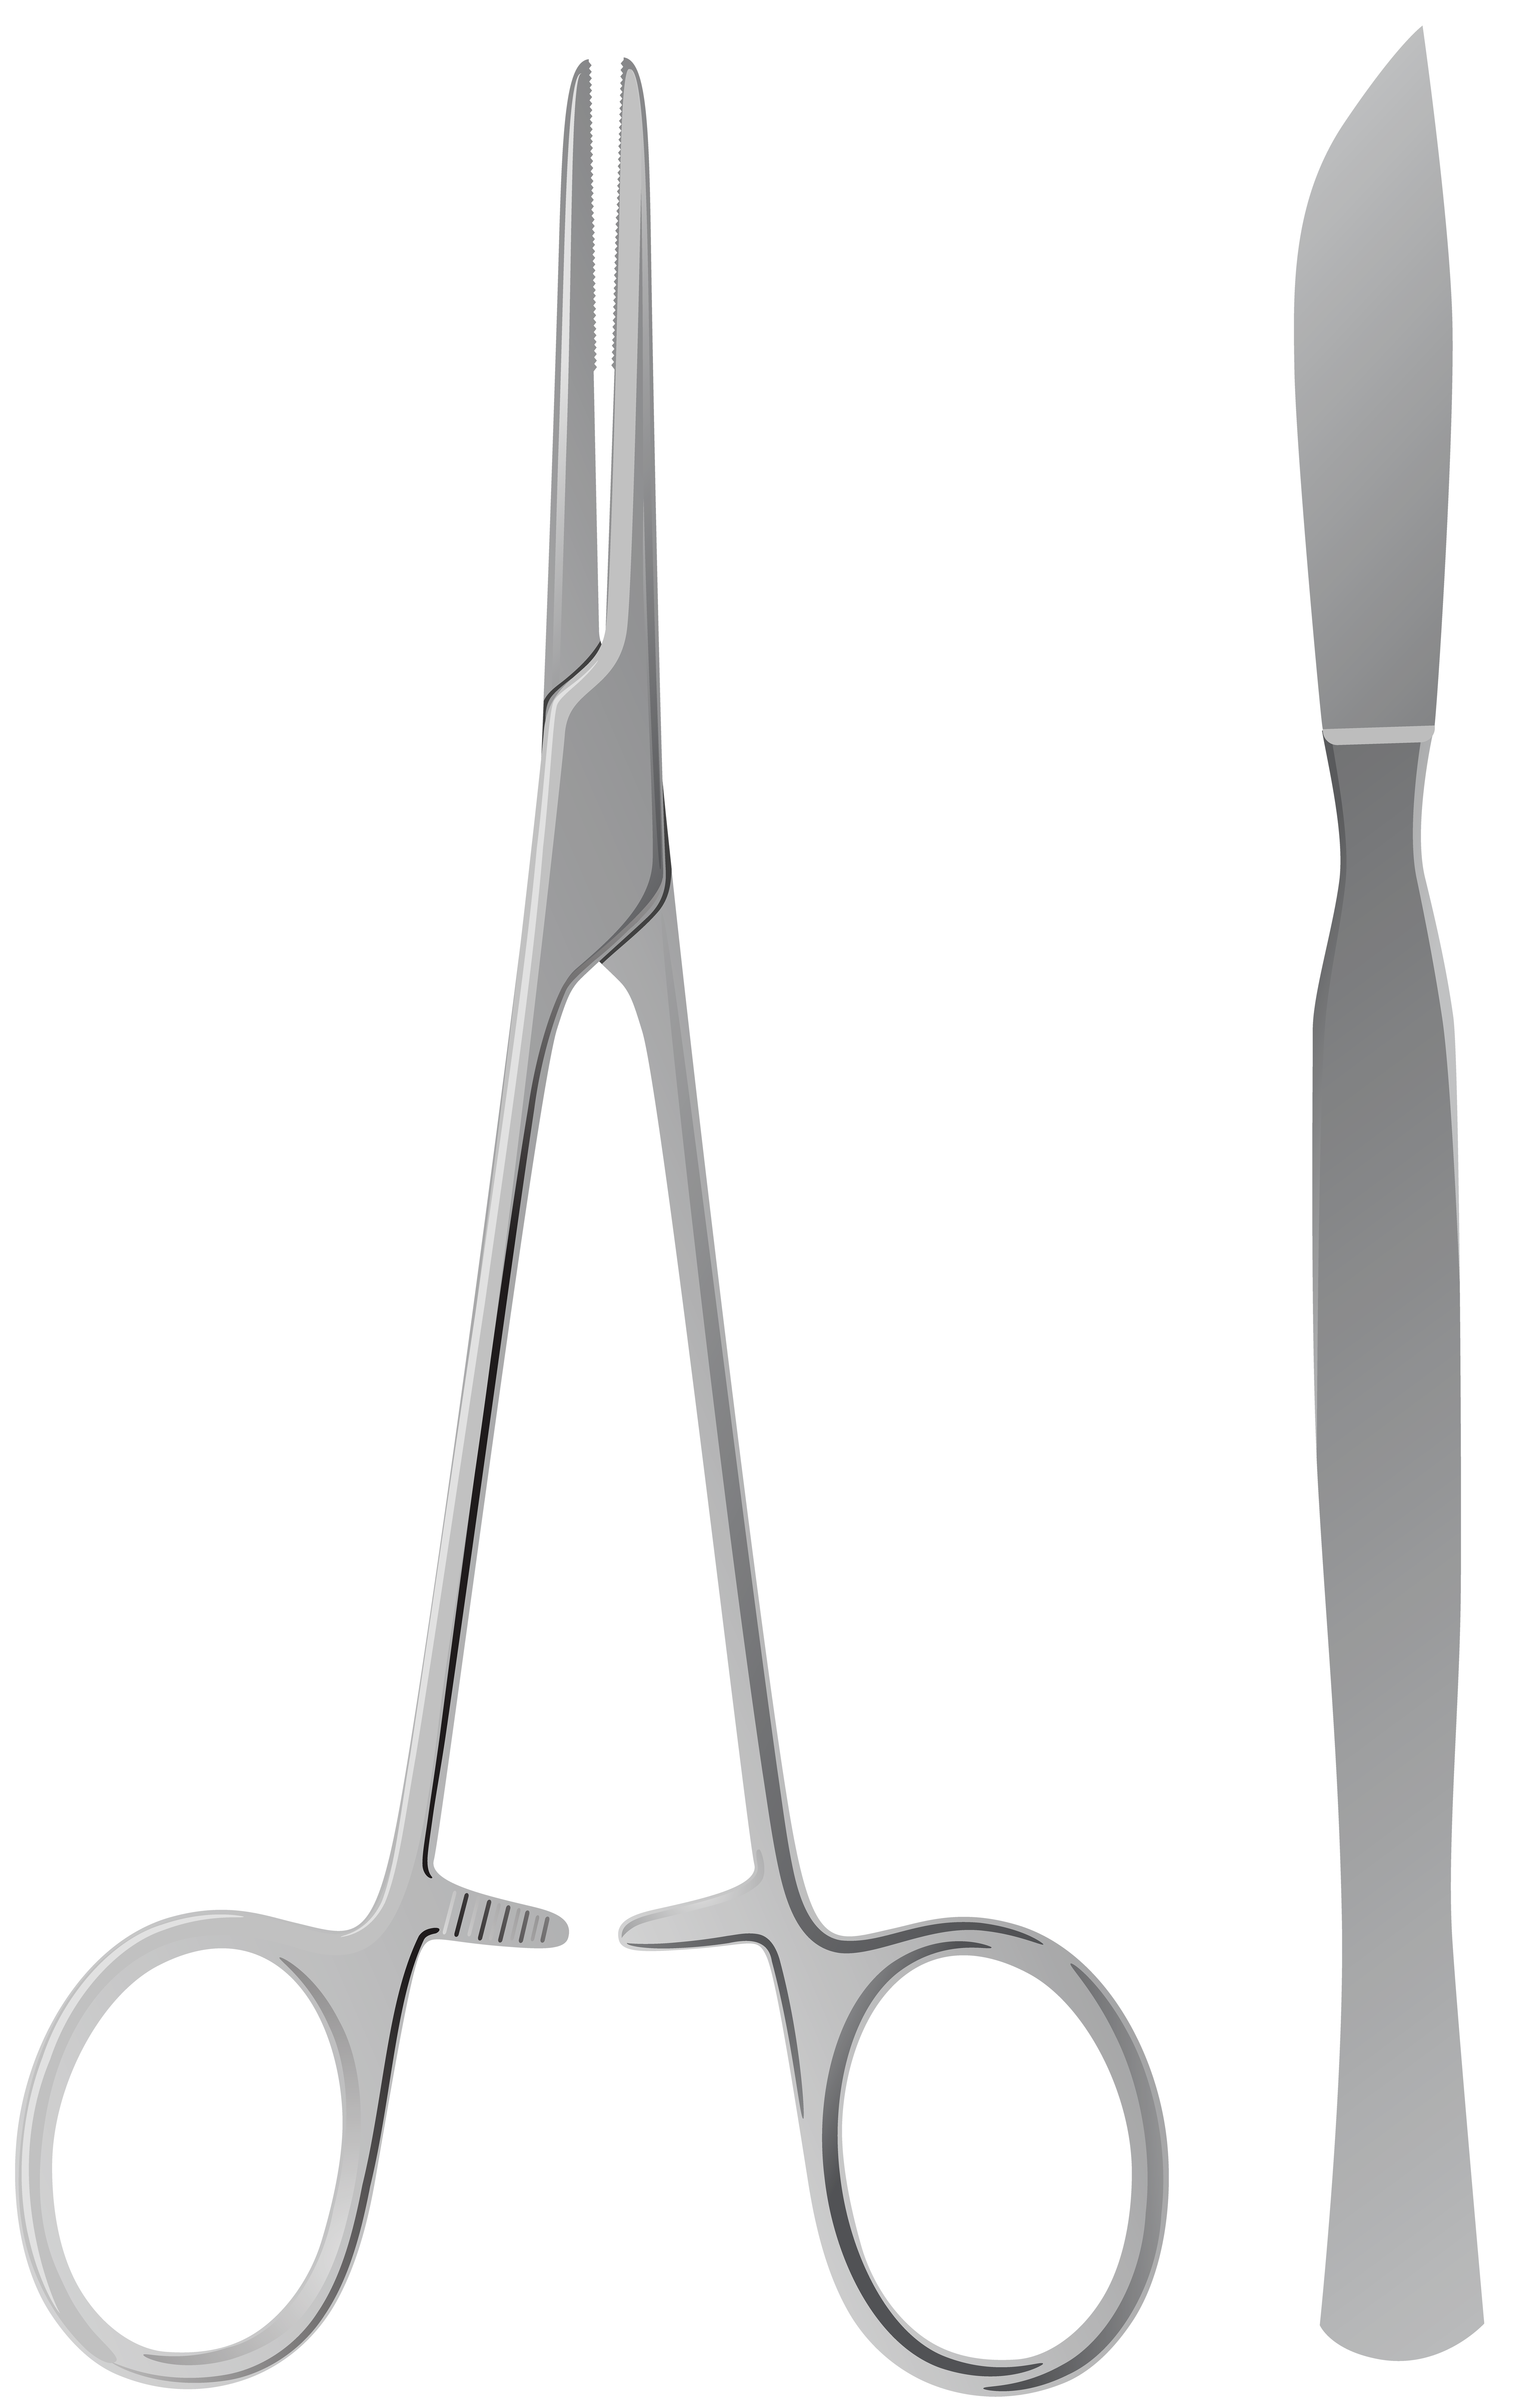 Forceps clipart image free download Medical Kit with Forceps PNG Clip Art - Best WEB Clipart image free download